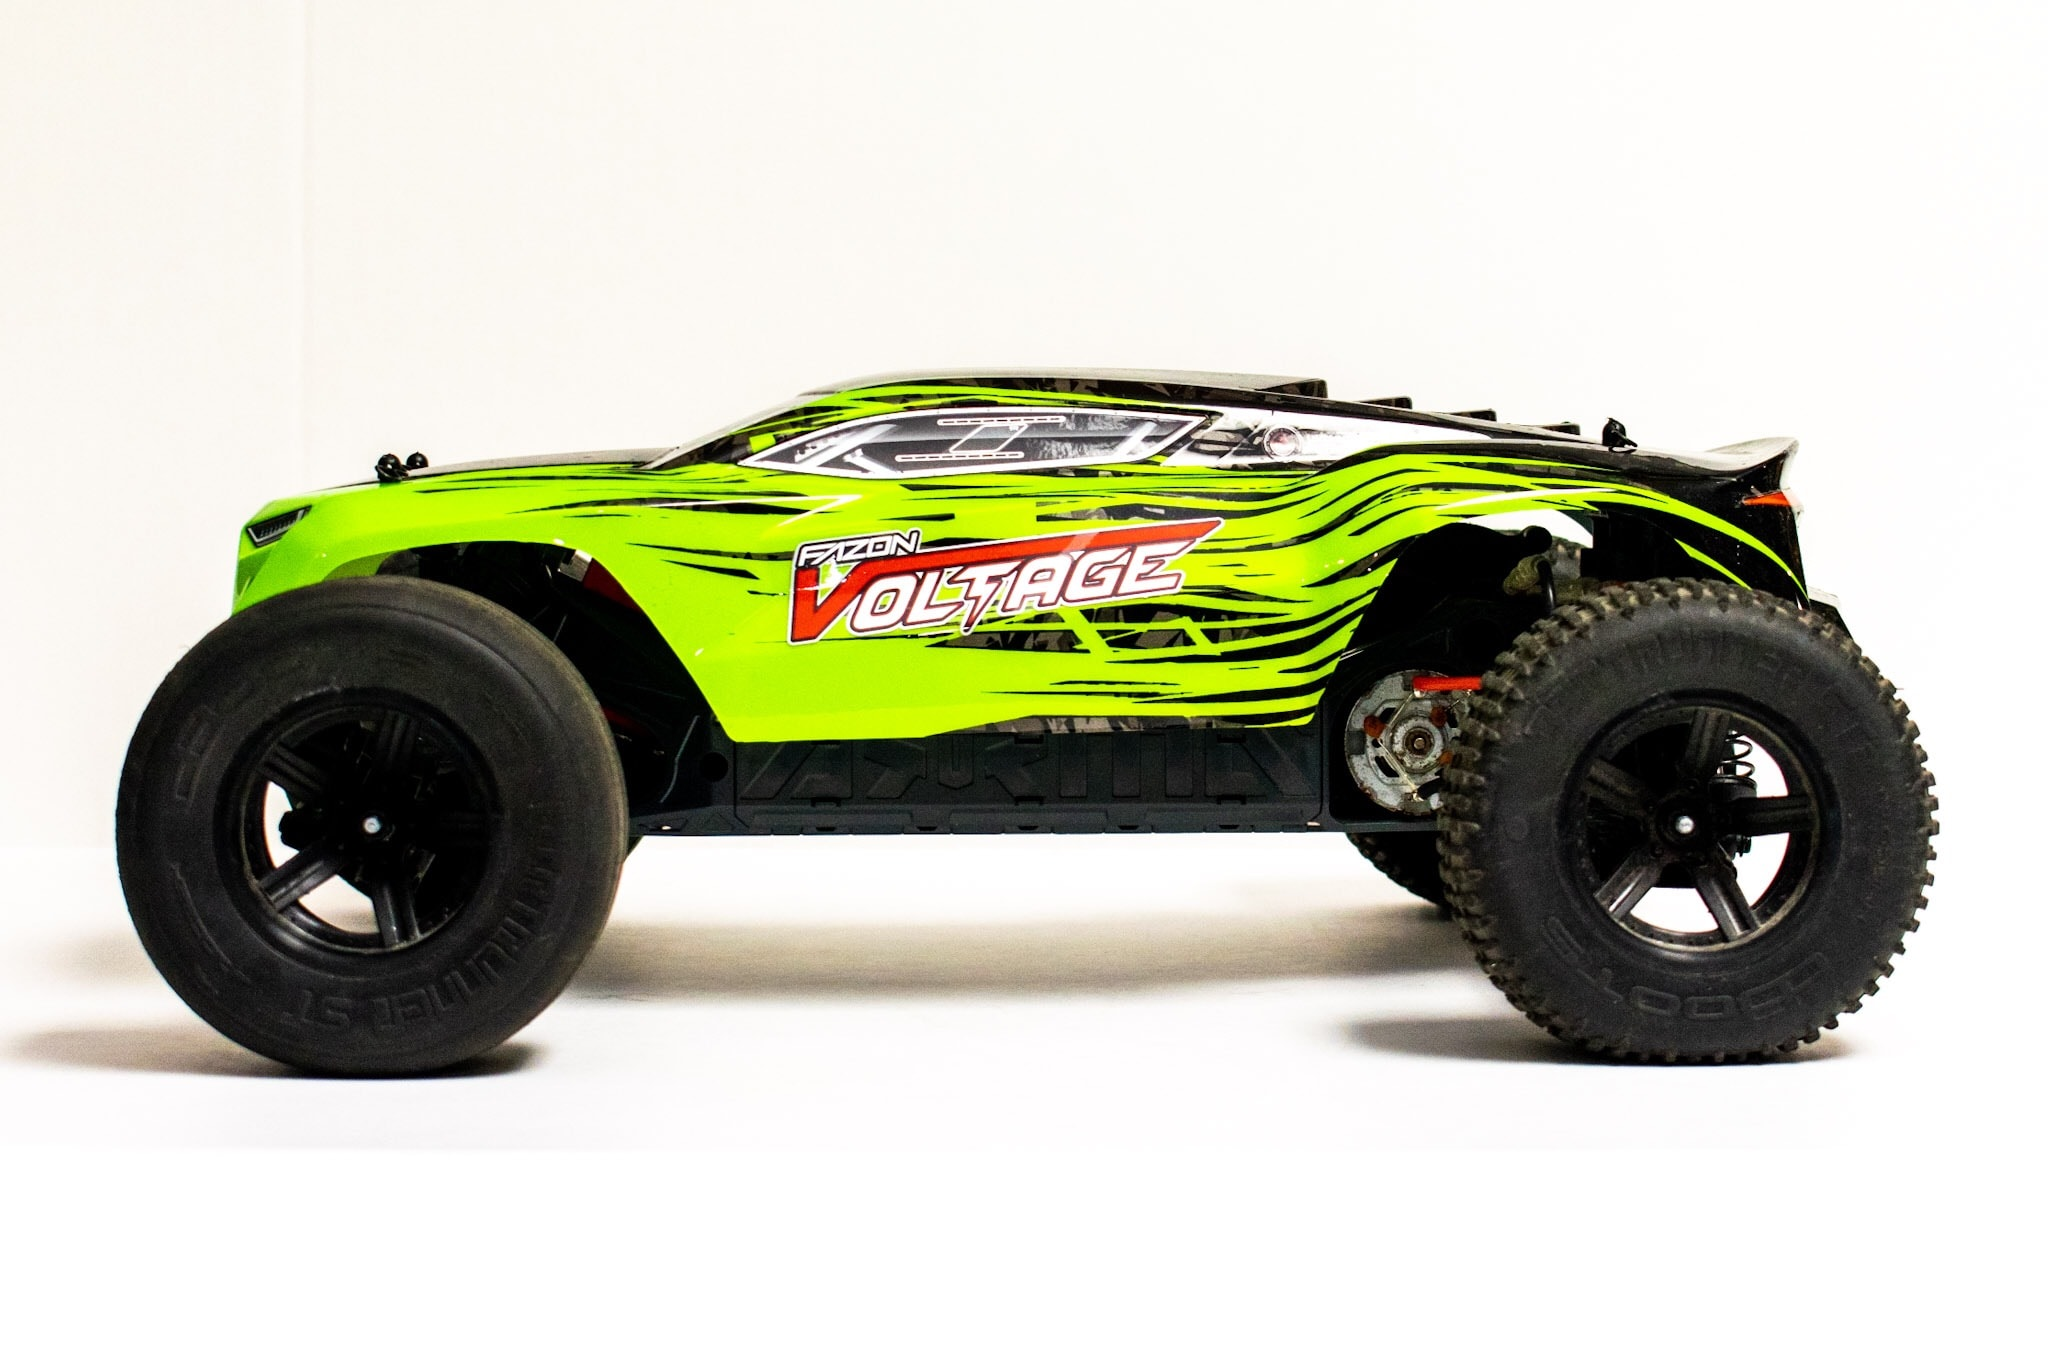 ARRMA Fazon Voltage Studio - Side